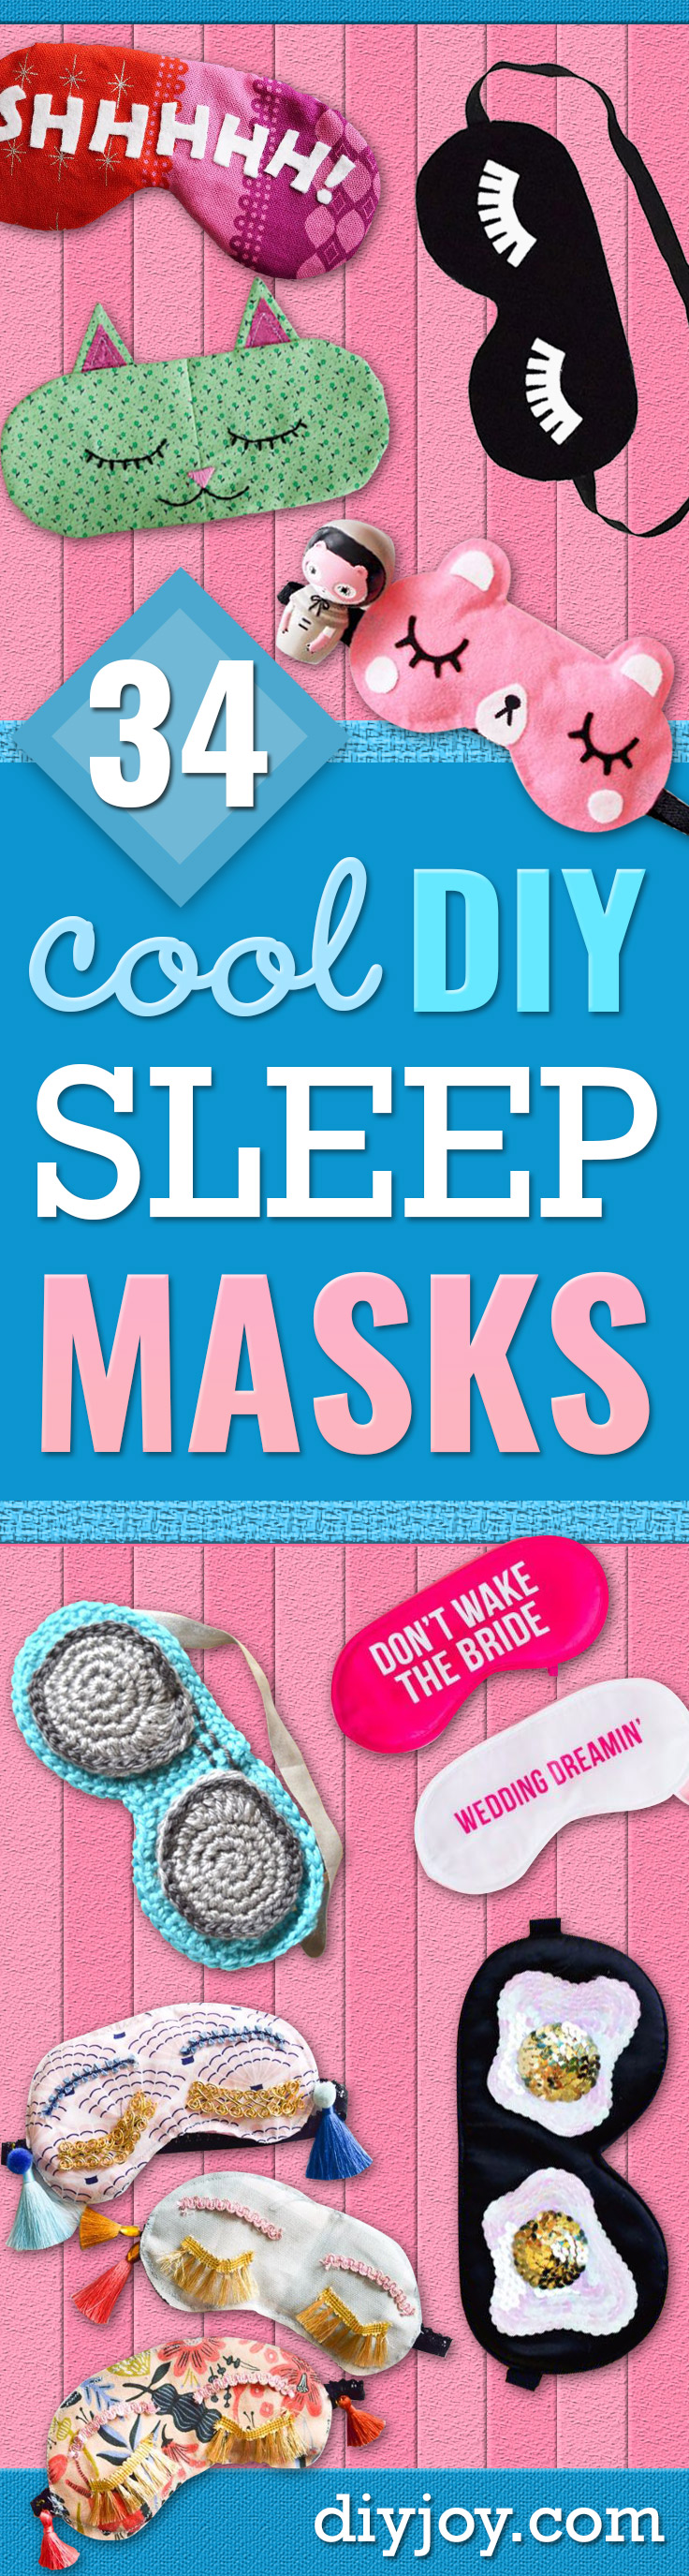 DIY Sleep Masks - Cute and Easy Ideas for Making a Homemade Sleep Mask - Best DIY Gift Ideas for Her - Cool Crafts To Make and Sell On Etsy - Creative Presents for Girls, Women and Teens - Do It Yourself Sleeping With Words, Accents and Fun Accessories for Relaxing #beauty #diyideas #diygifts